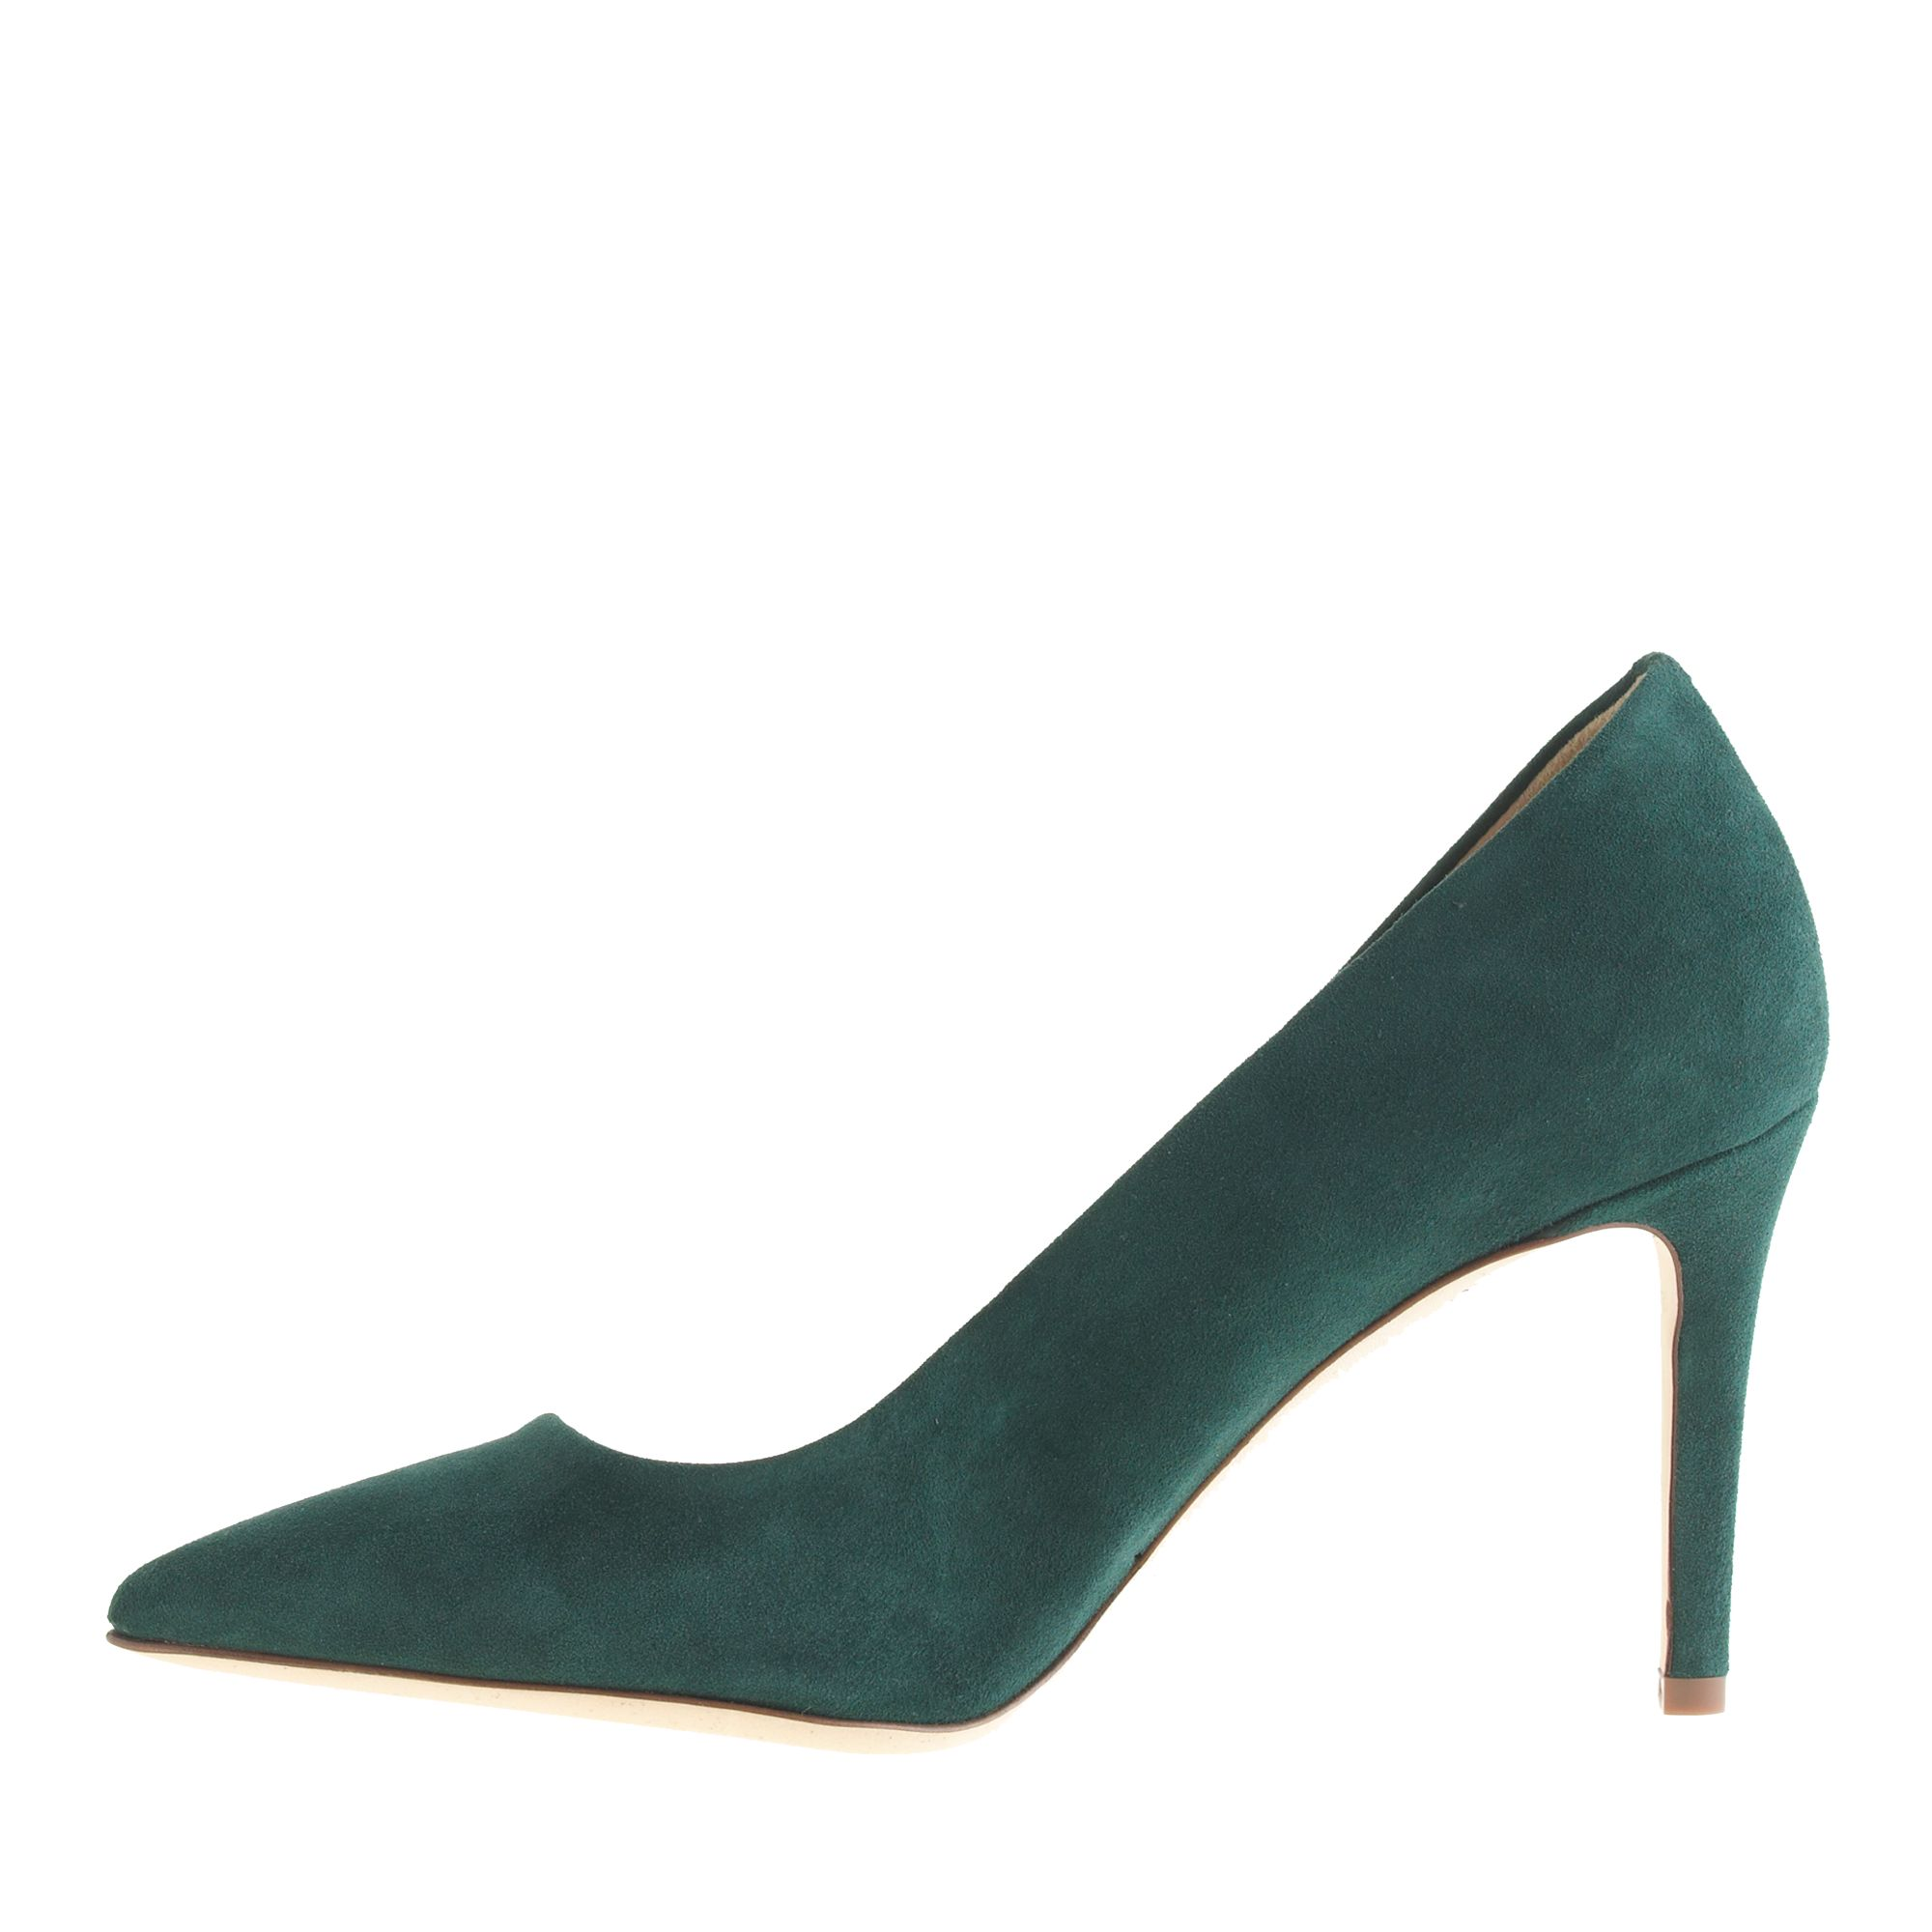 64672c6d022 Lyst - J.Crew Everly Suede Pumps in Green